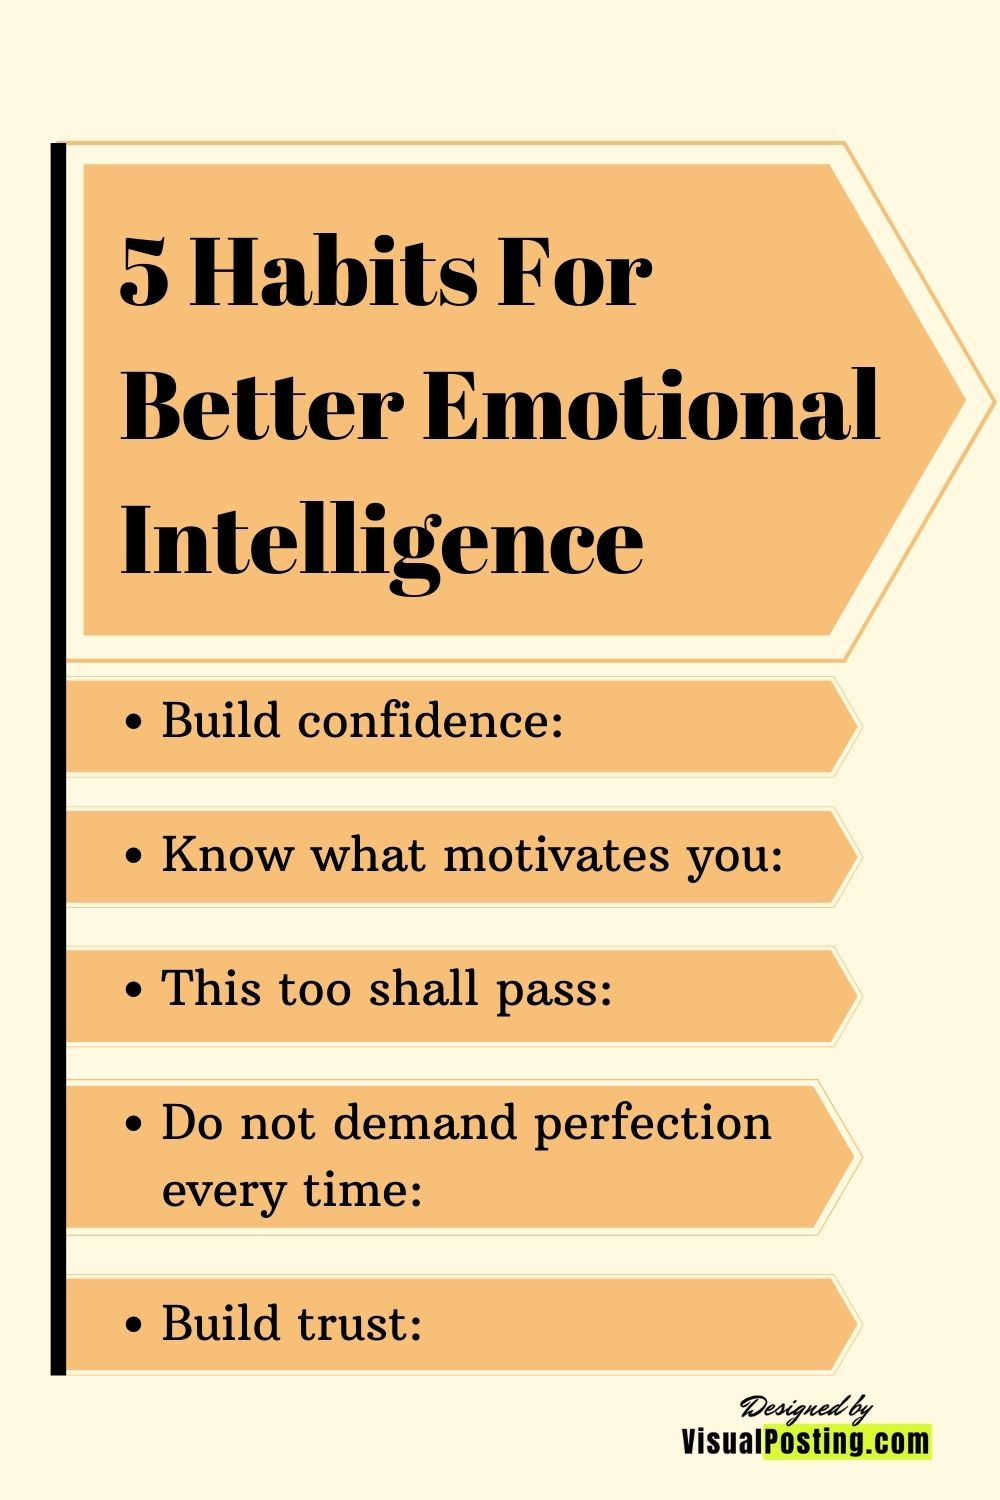 5 Habits For Better Emotional Intelligence.jpg